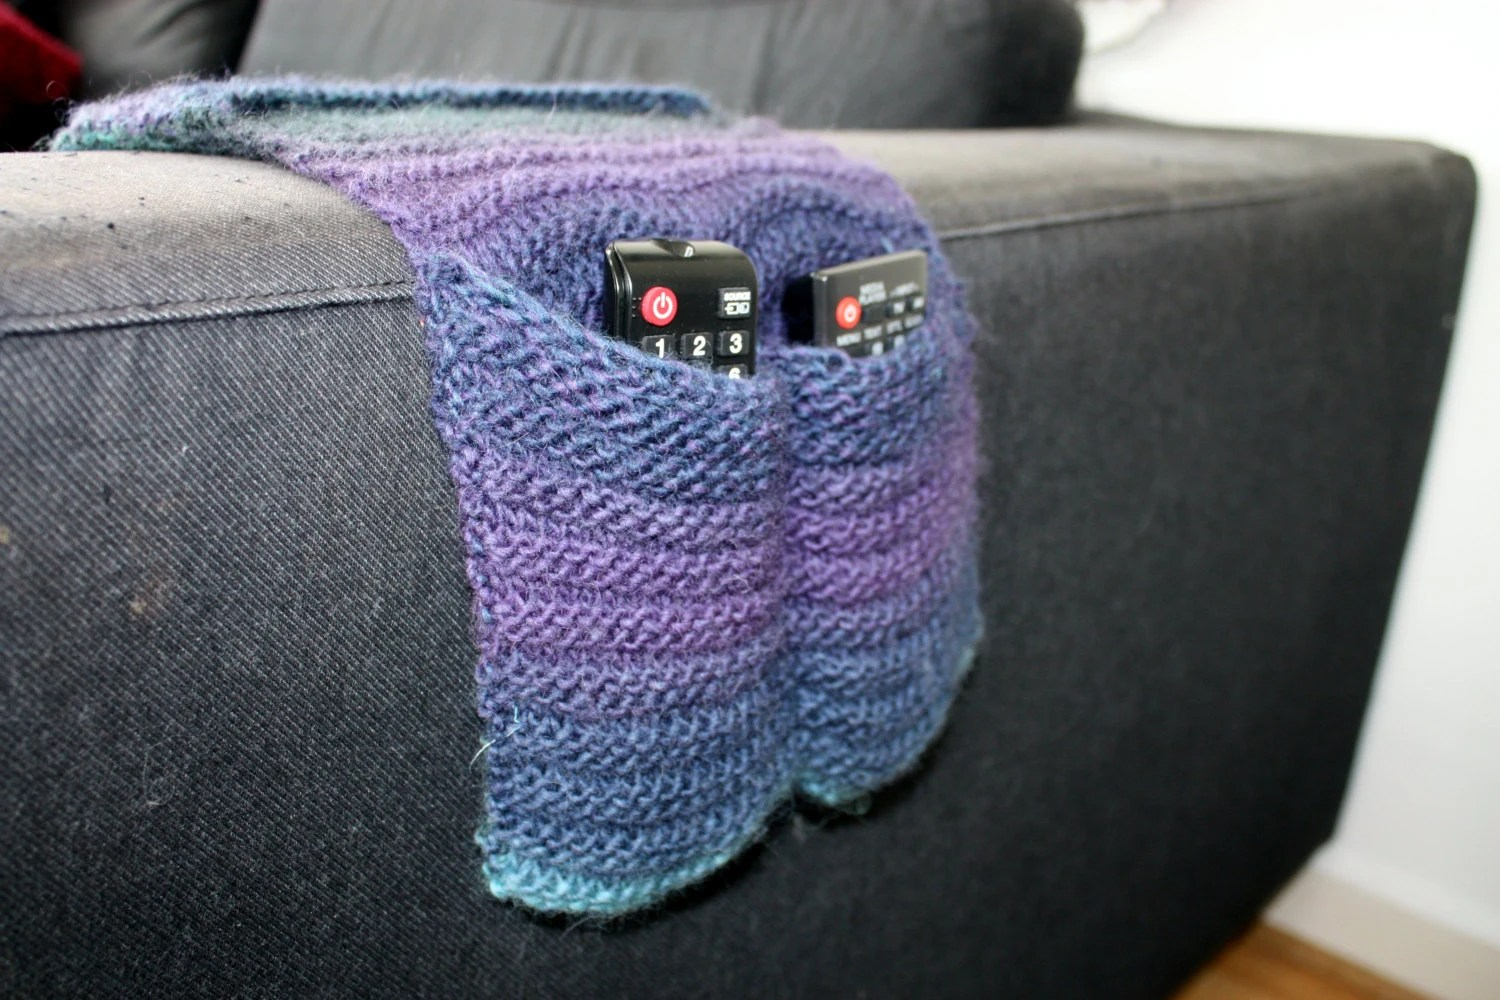 remote control holder for chair pattern wedding covers hire glasgow knitting instant download pdf